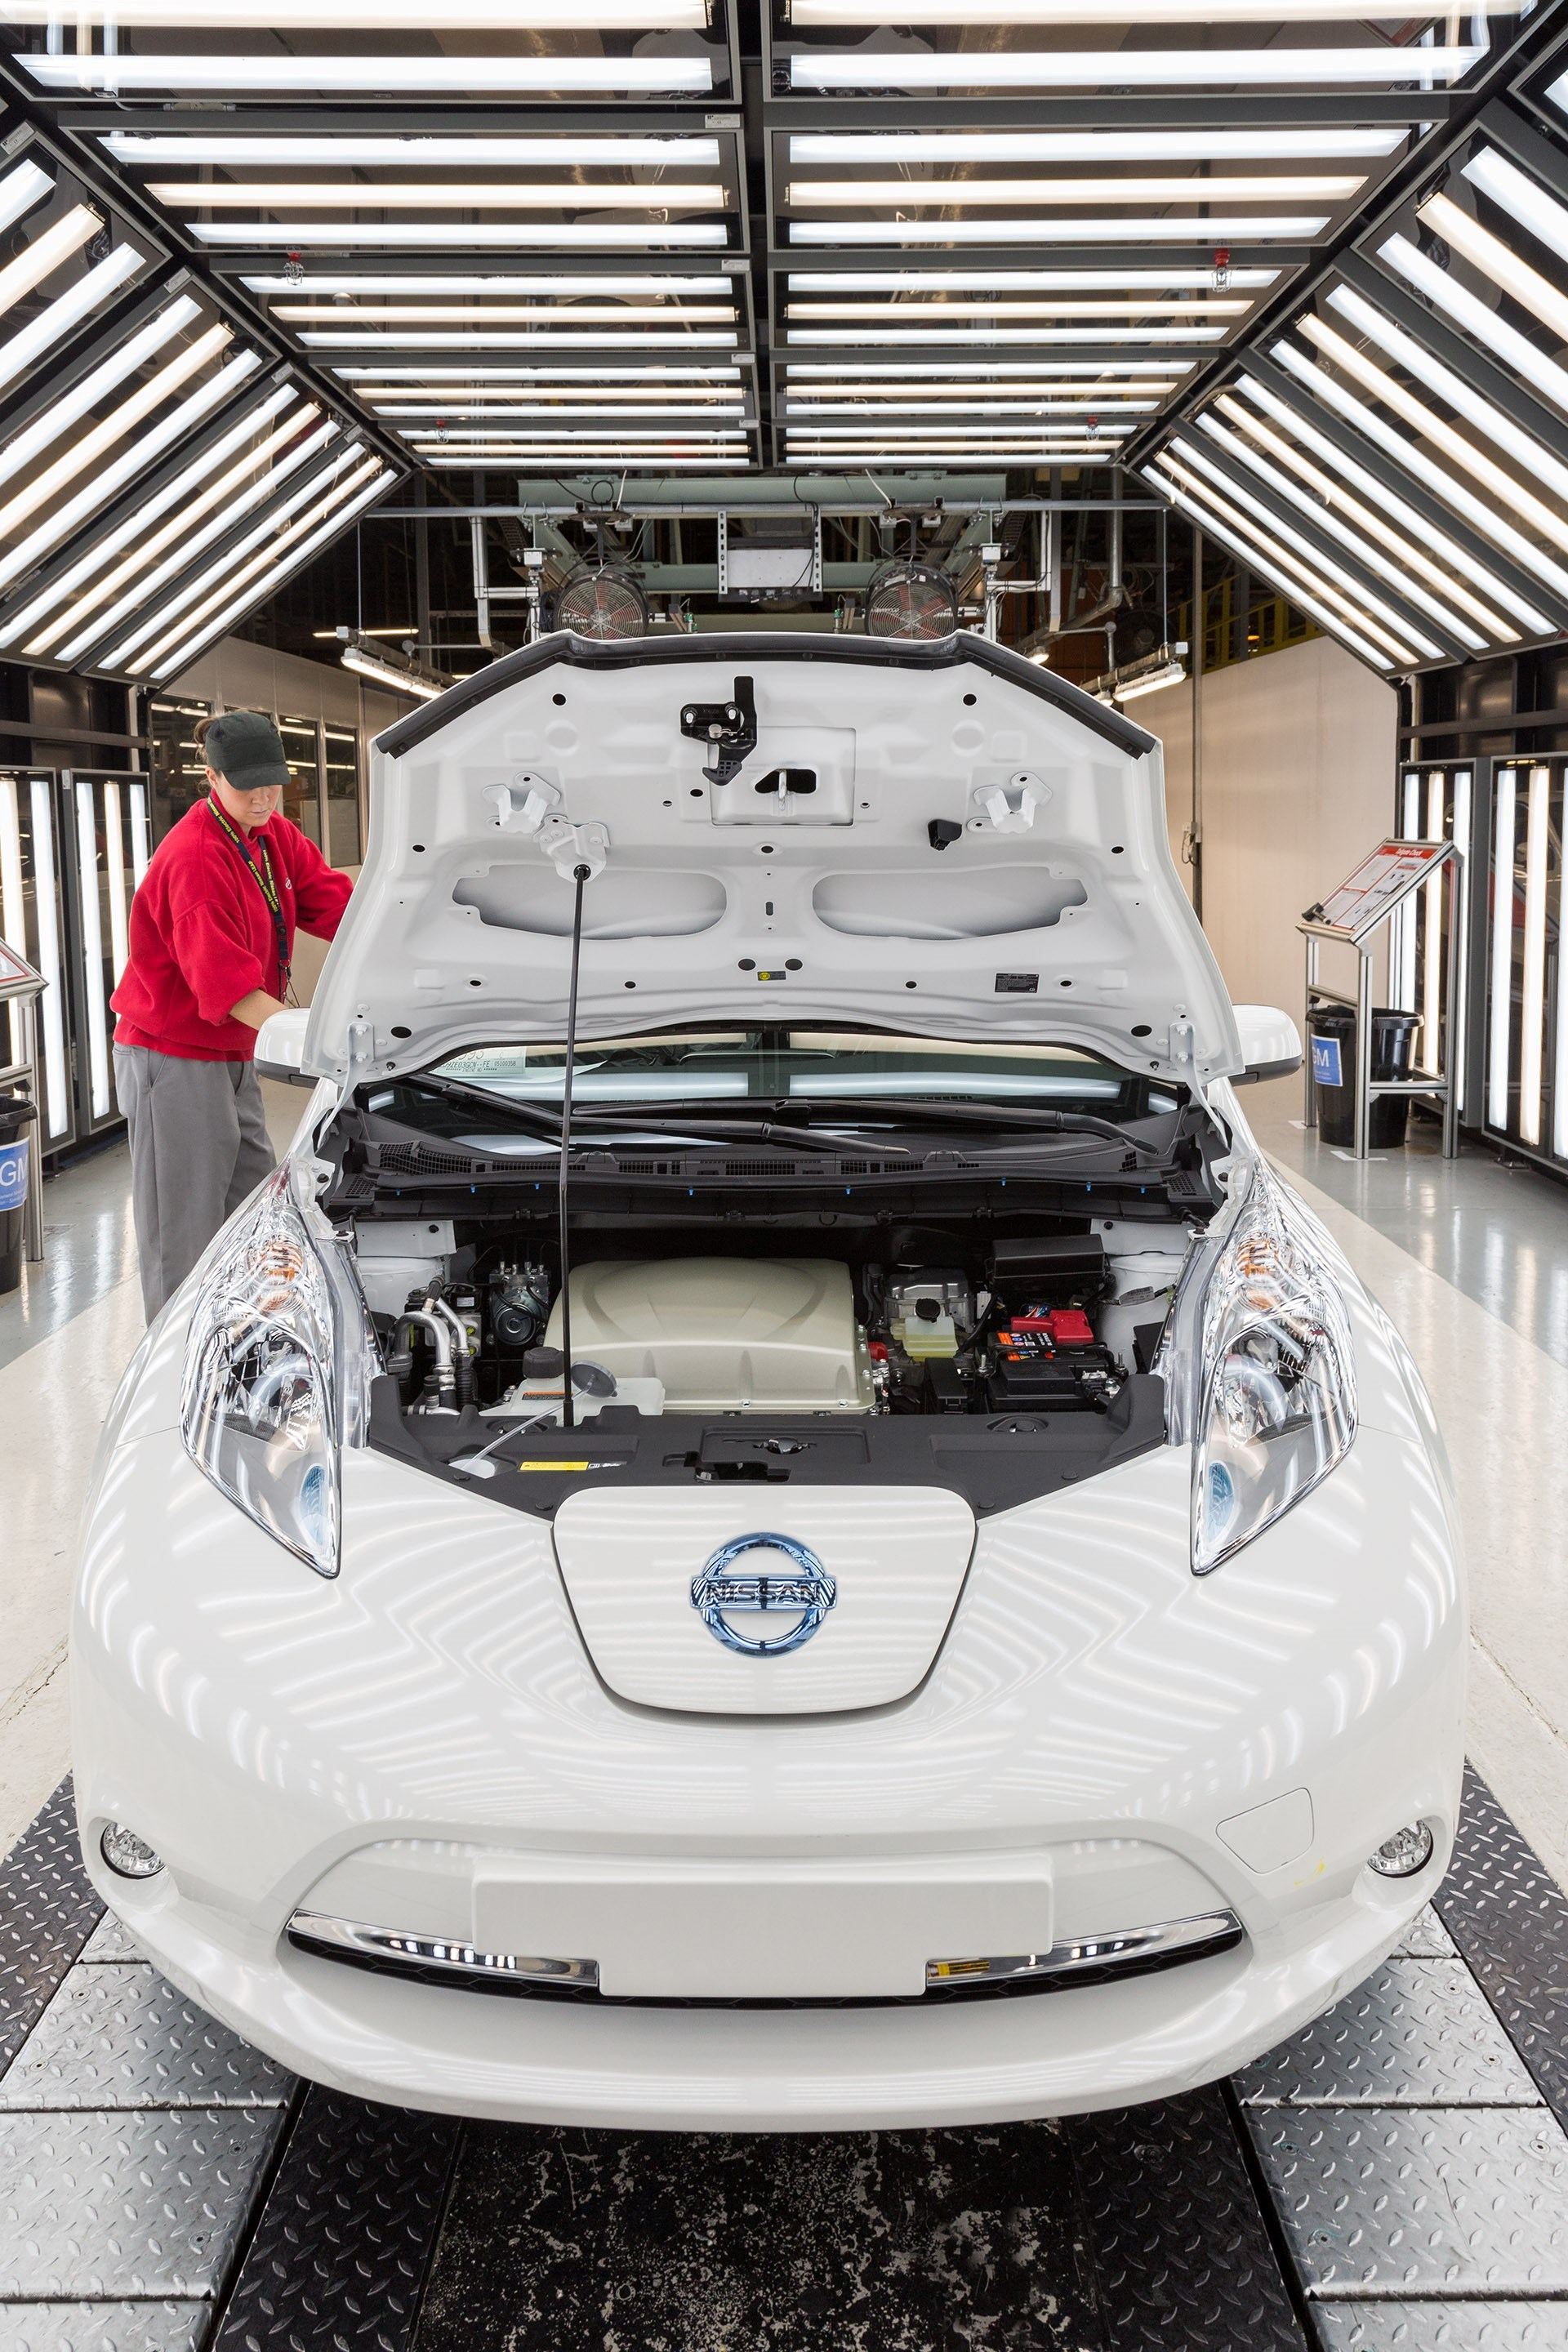 Nissan Leaf in Production Facility